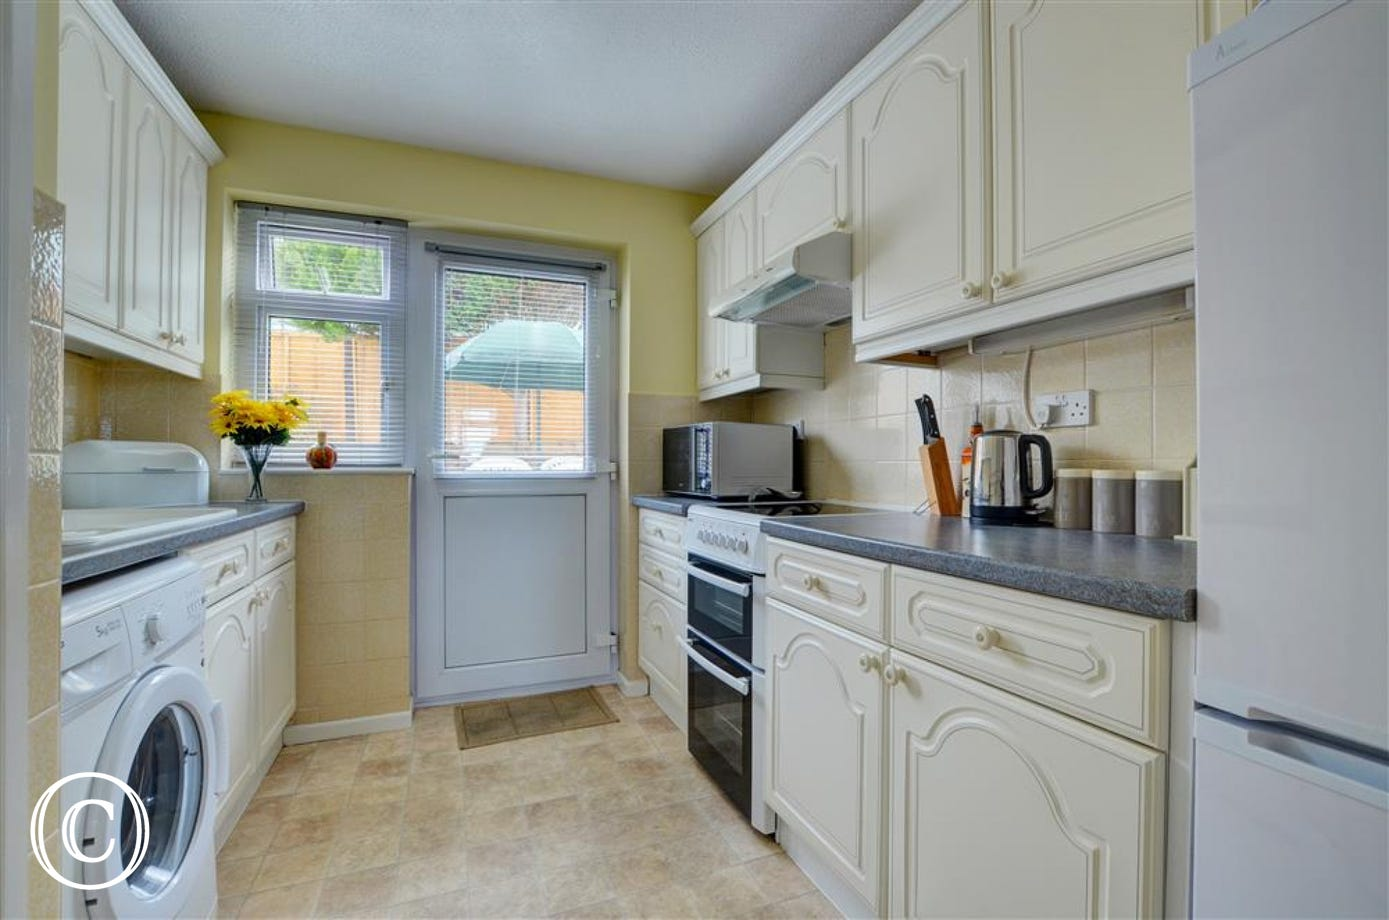 The well equipped kitchen which offers all you will need for dining in